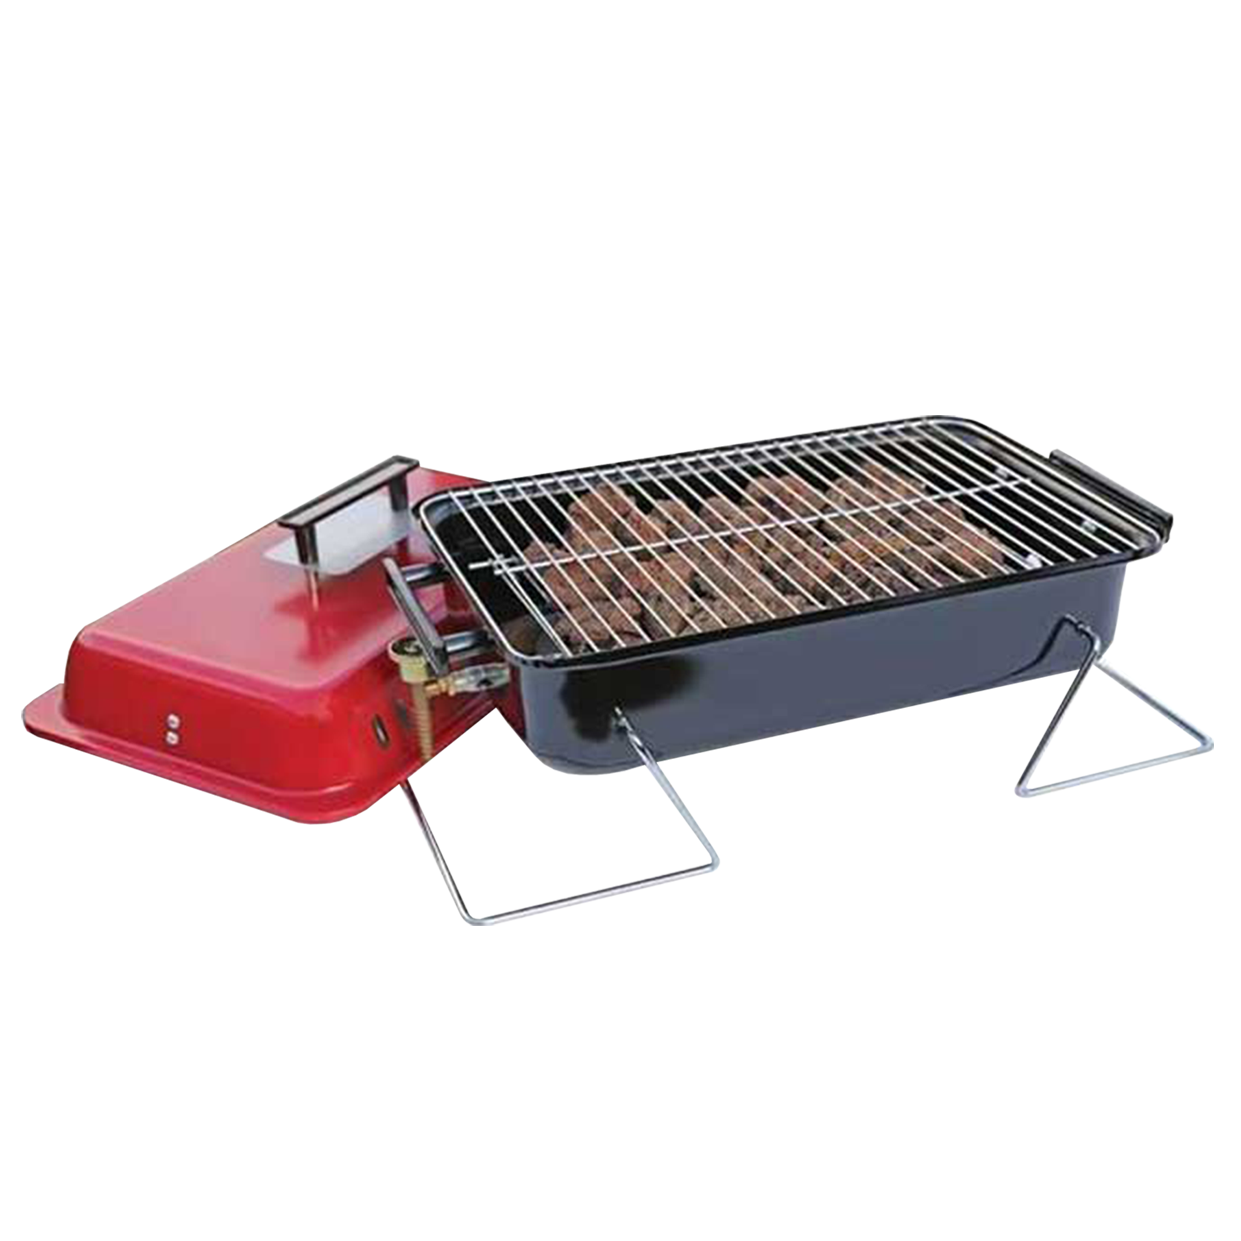 Patio Life Lifestyle Portable Camping Gas Barbecue